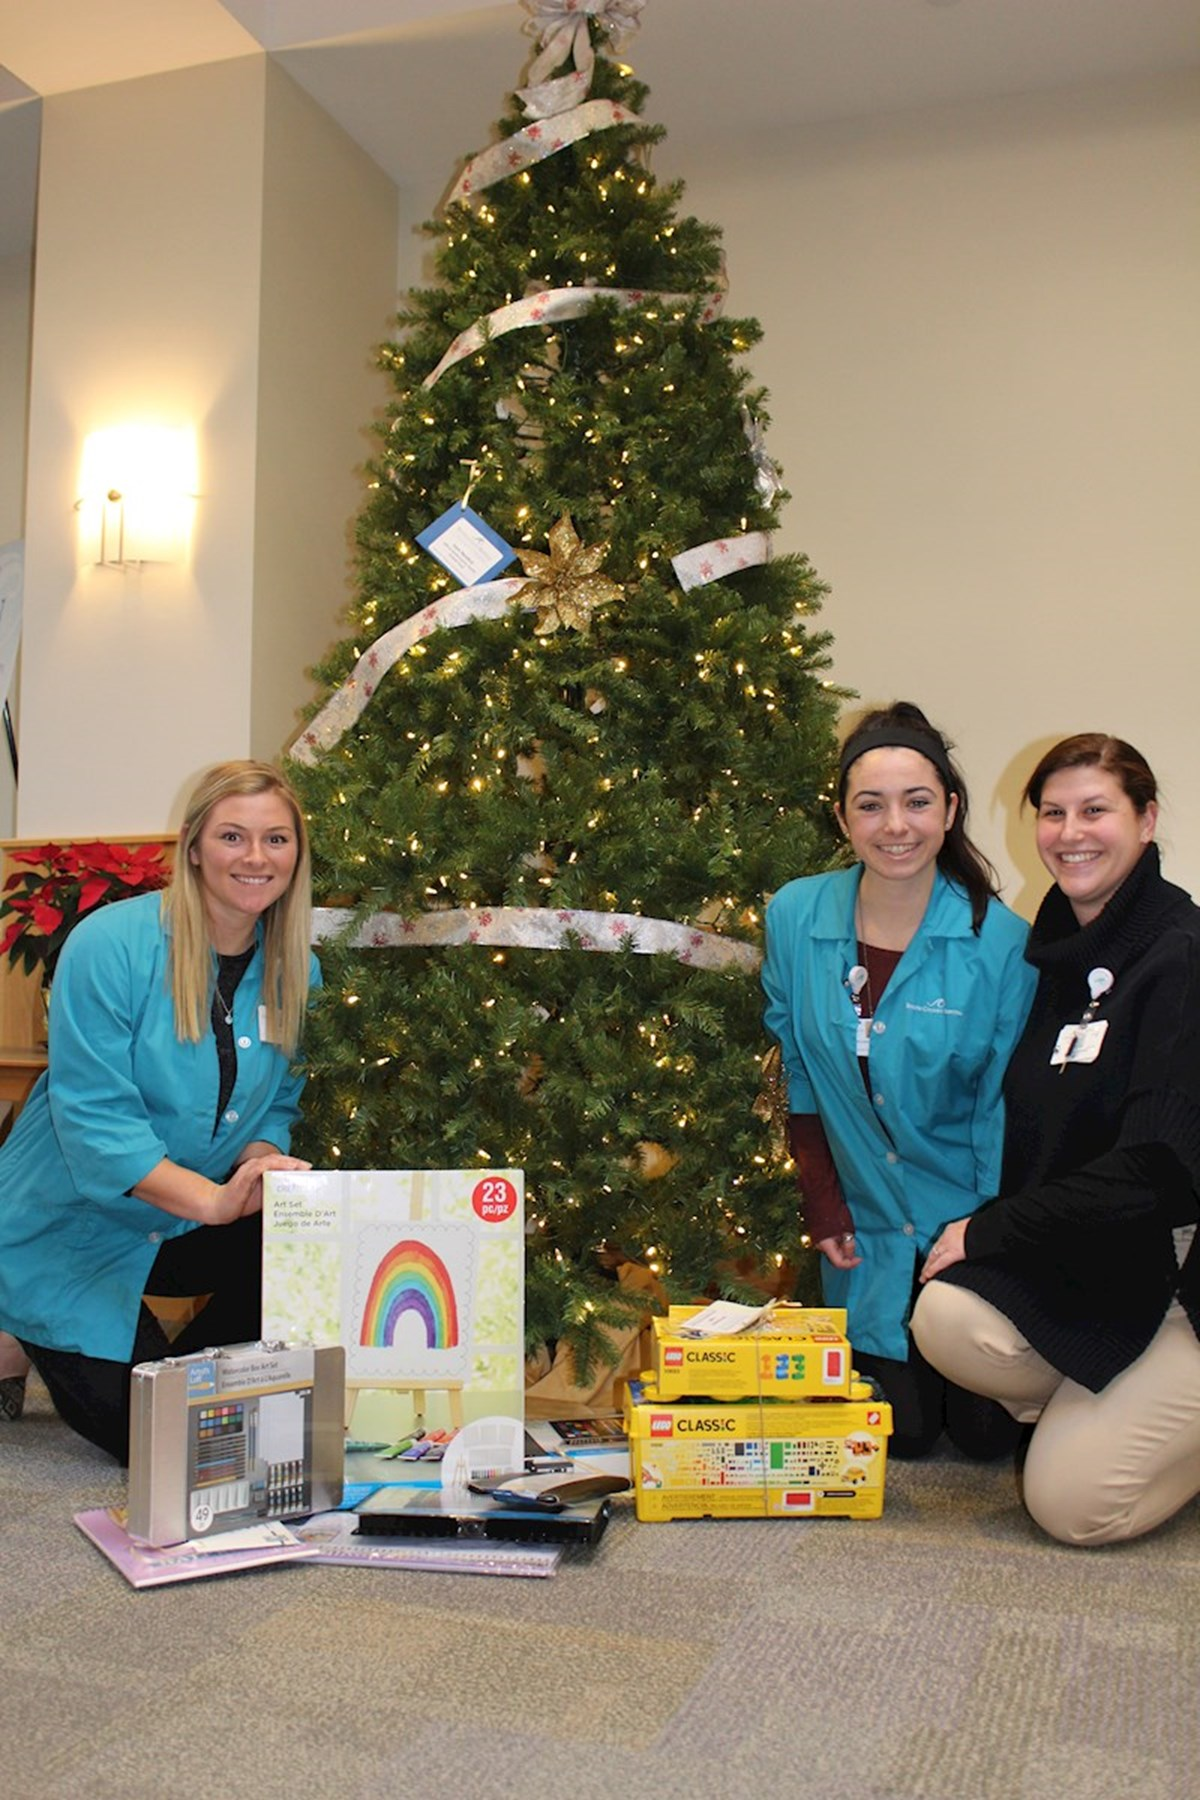 South County Hospital celebrates the season of giving, by giving